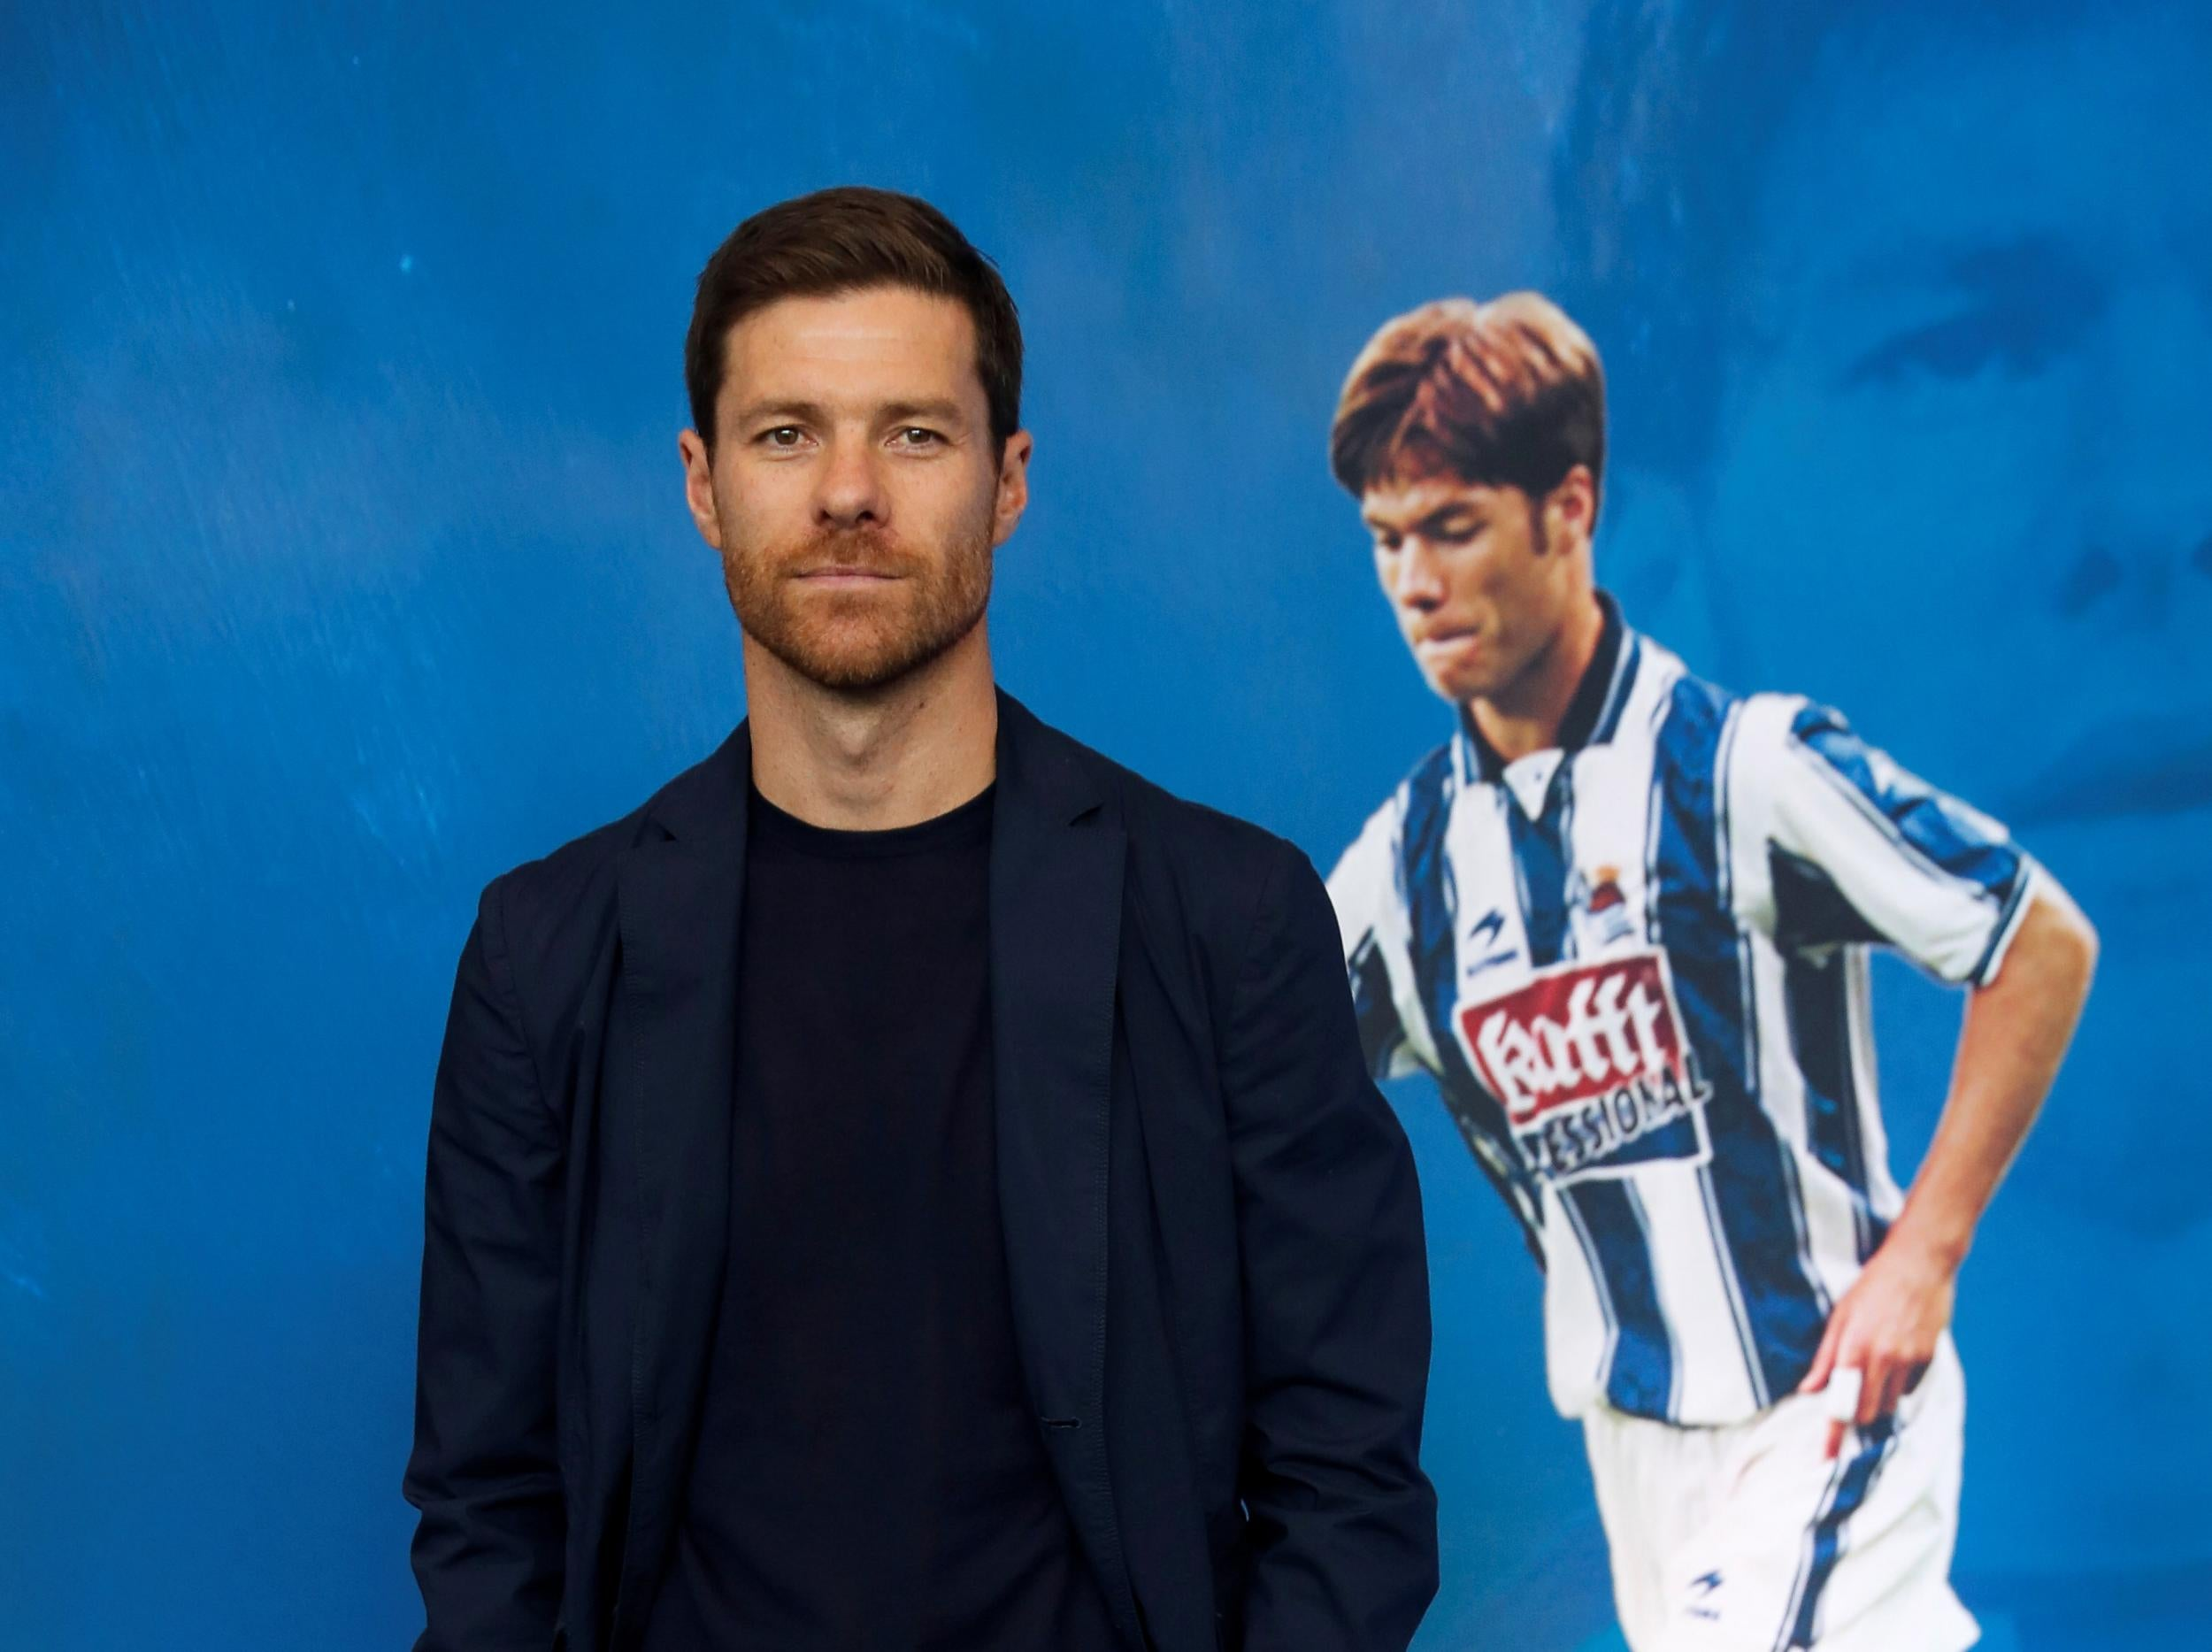 Xabi Alonso takes the next step in his meticulously planned career with old club Real Sociedad